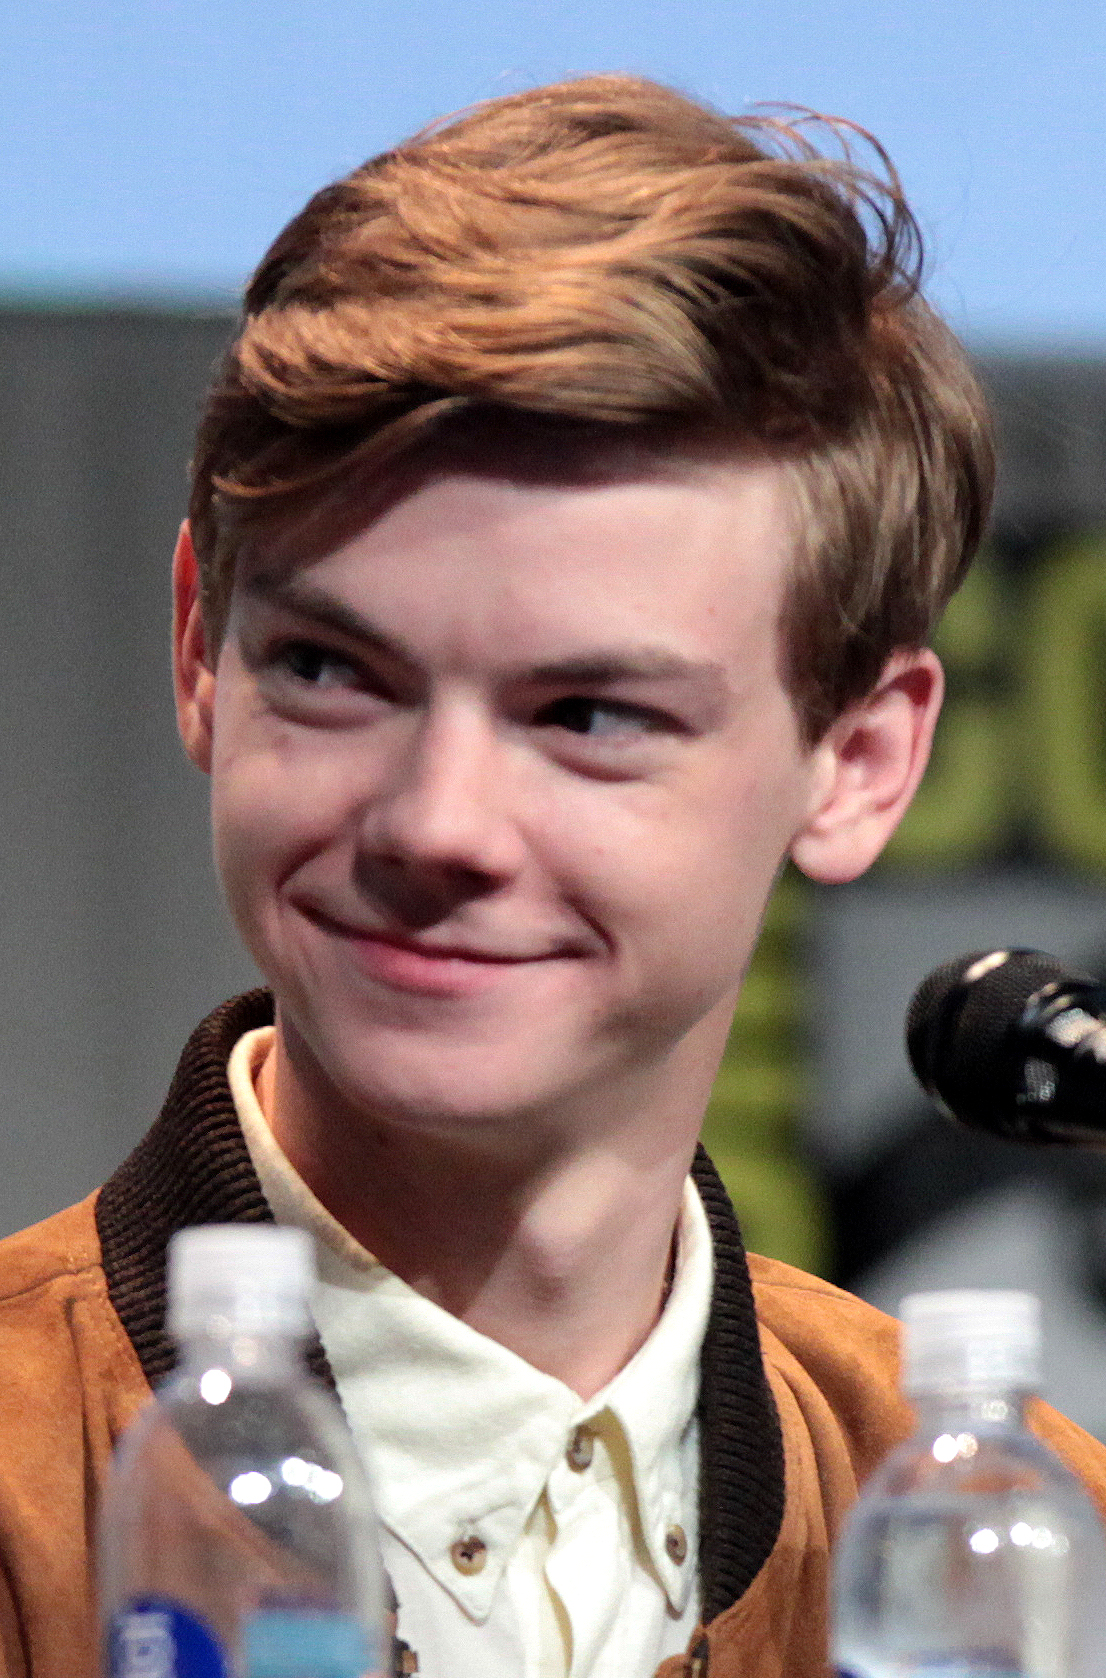 The 28-year old son of father Mark Sangster and mother Tasha Sangster Thomas Sangster in 2018 photo. Thomas Sangster earned a  million dollar salary - leaving the net worth at 1.5 million in 2018